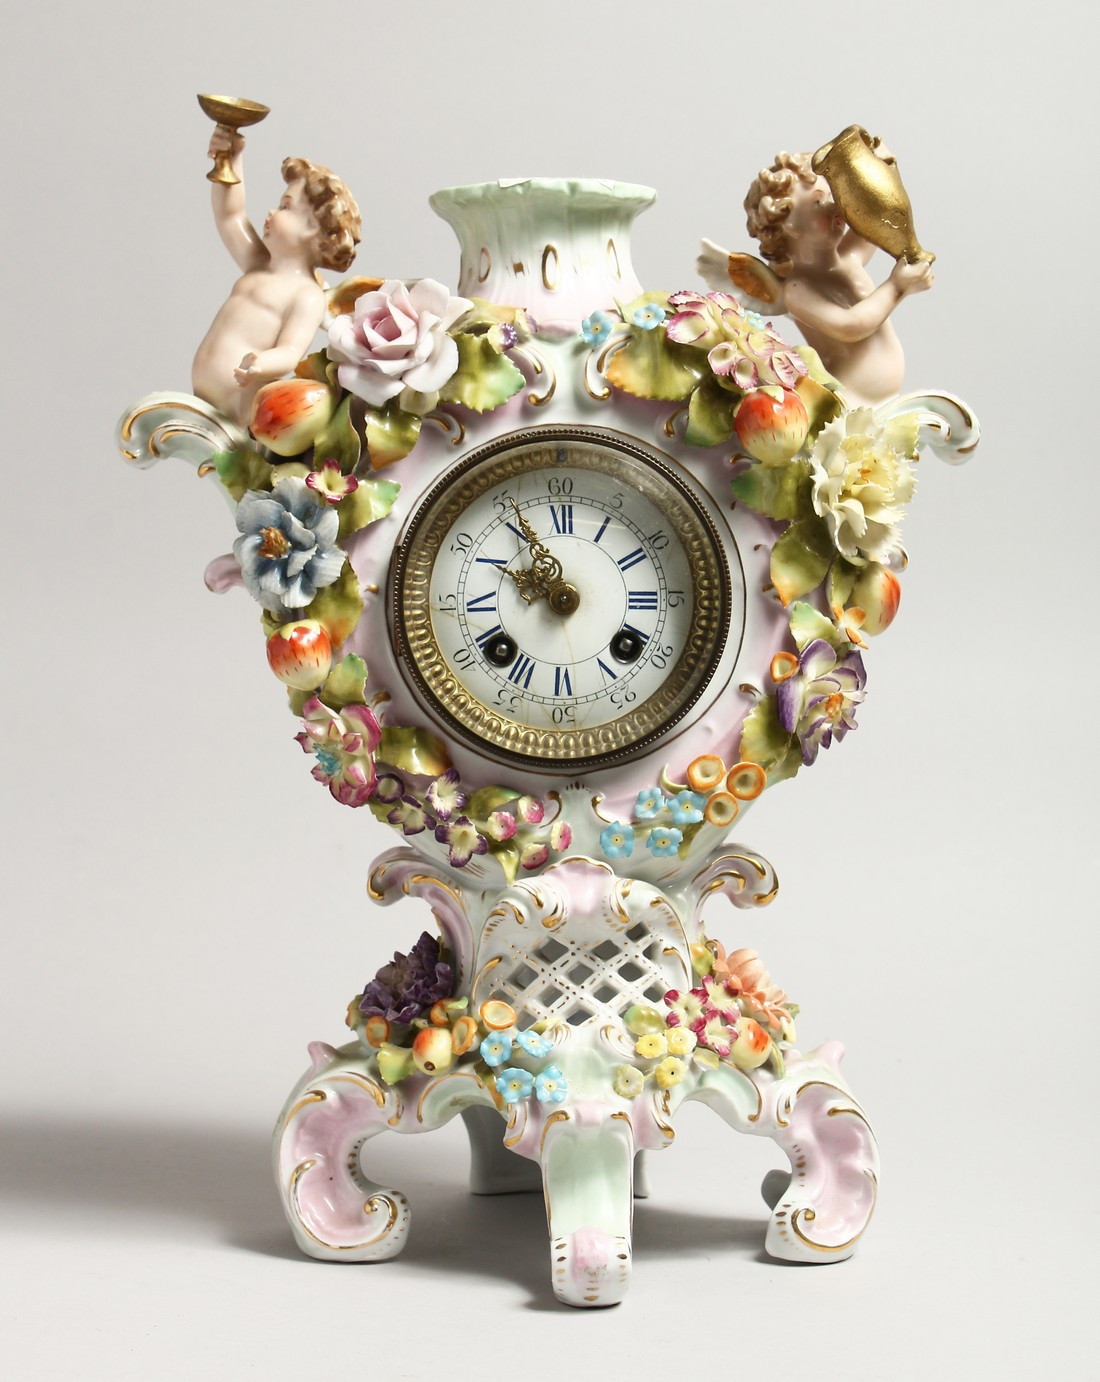 A CONTINENTAL PORCELAIN CUPID AND FLOWER ENCRUSTED CLOCK, with blue and white Roman numerals.